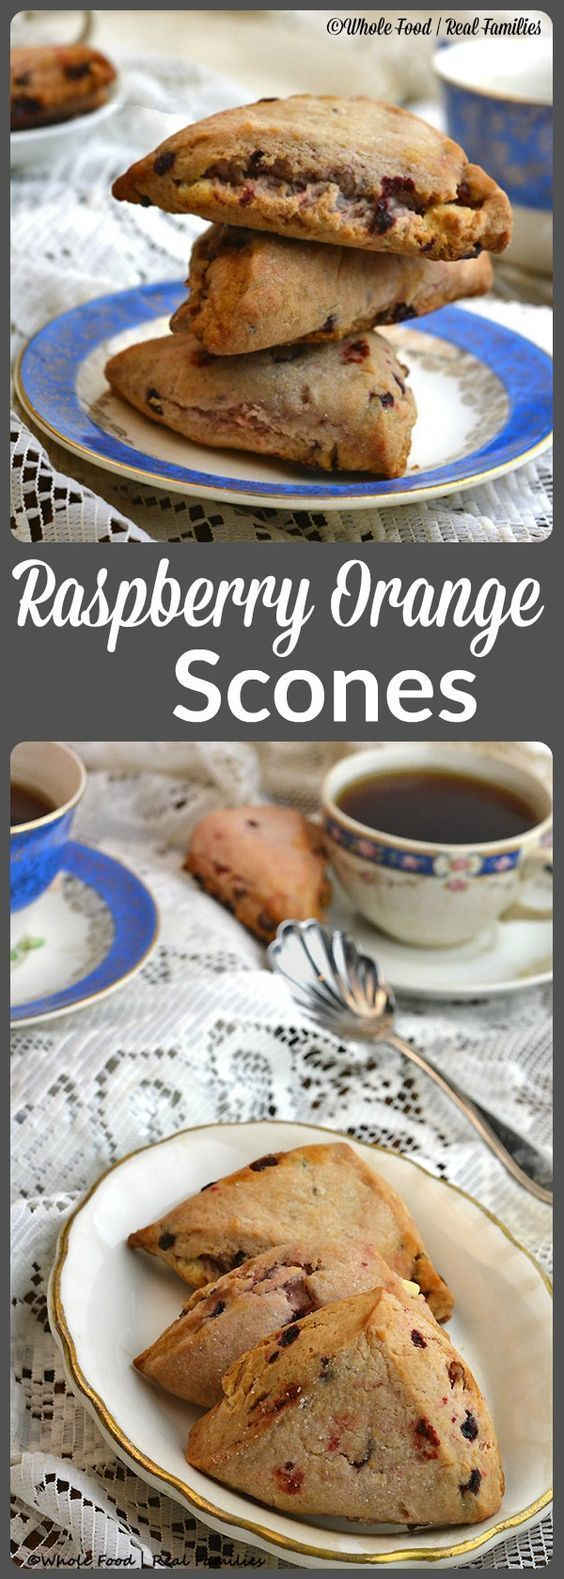 Raspberry Orange Scones are fruity, lightly sweet and delicious!! A perfect wholesome breakfast, snack or dessert.